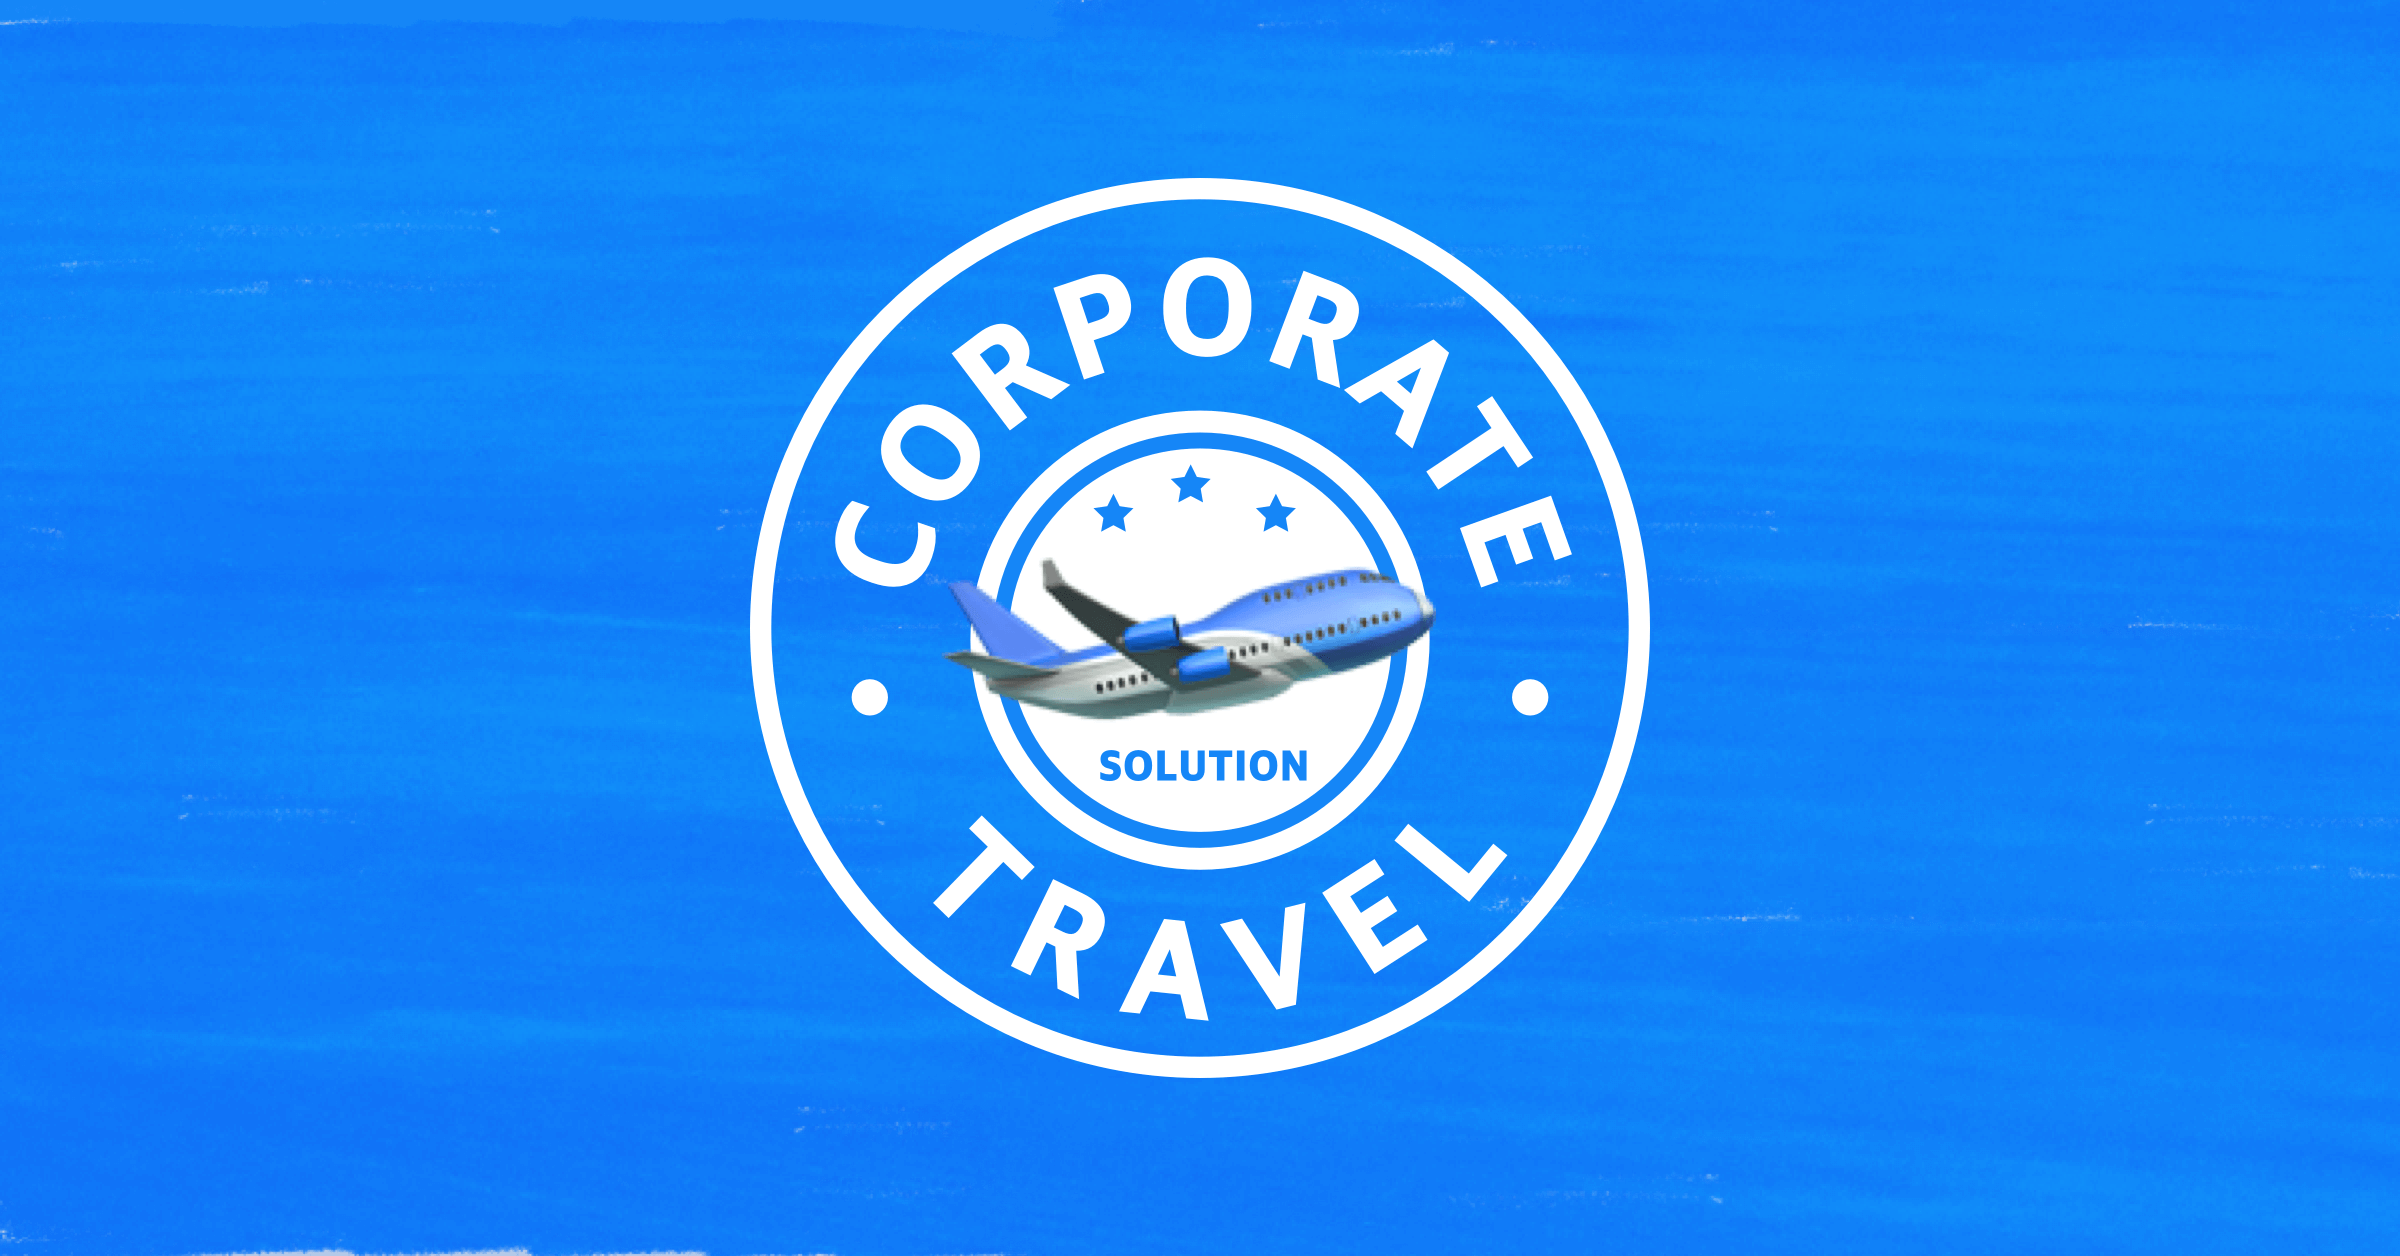 Why your company needs a corporate travel solution